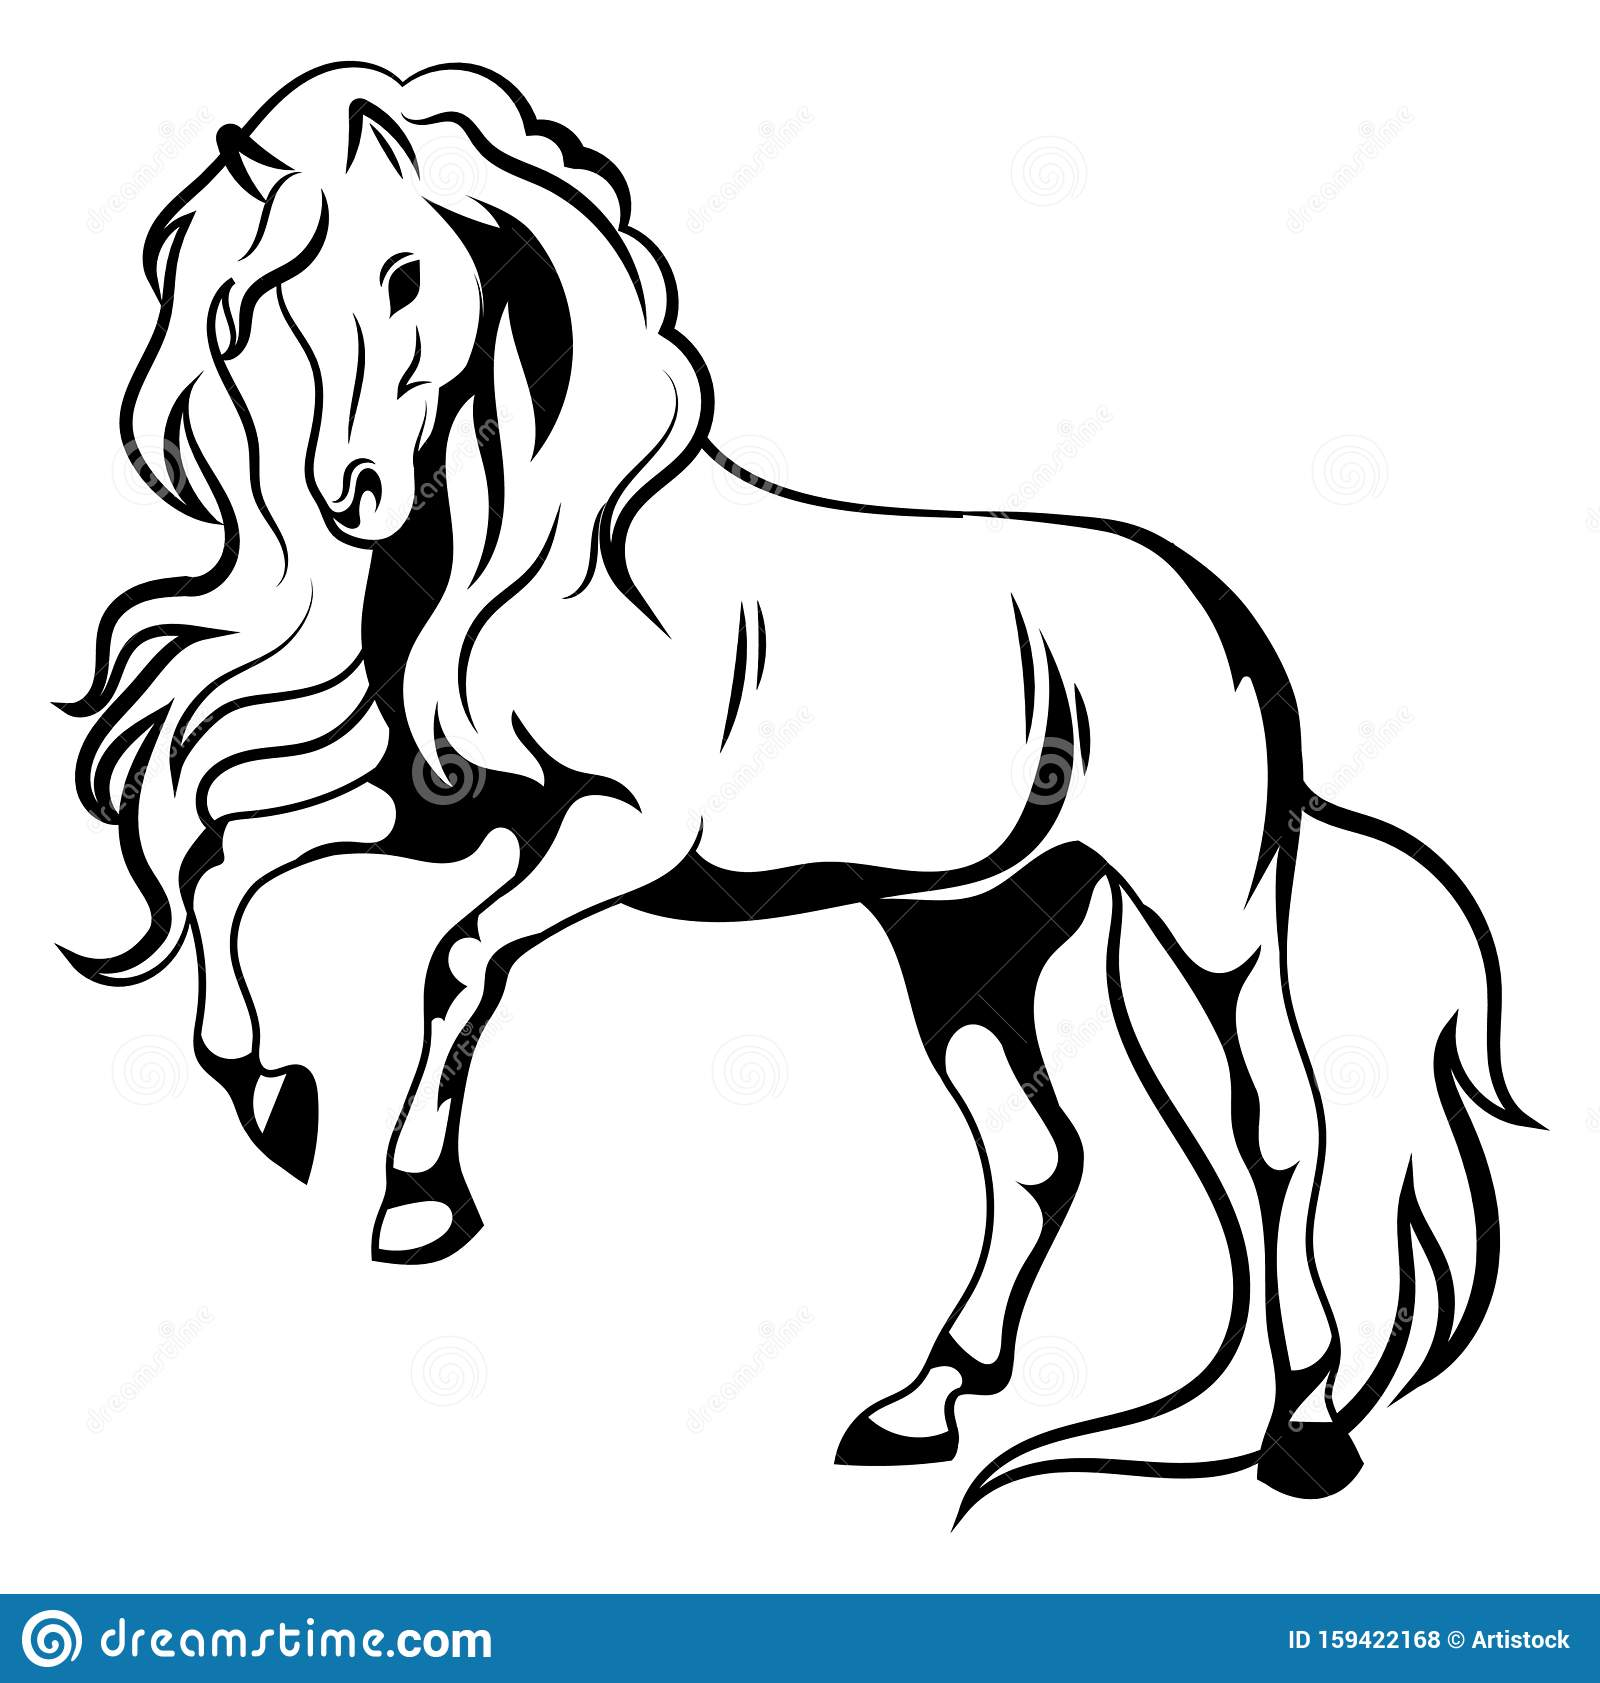 Wild Horse Black And White Illustration Of A Mustang Standing On Its Hind Legs Vector Drawing Of A Farm Animal Tattoo Stock Vector Illustration Of Jump Power 159422168